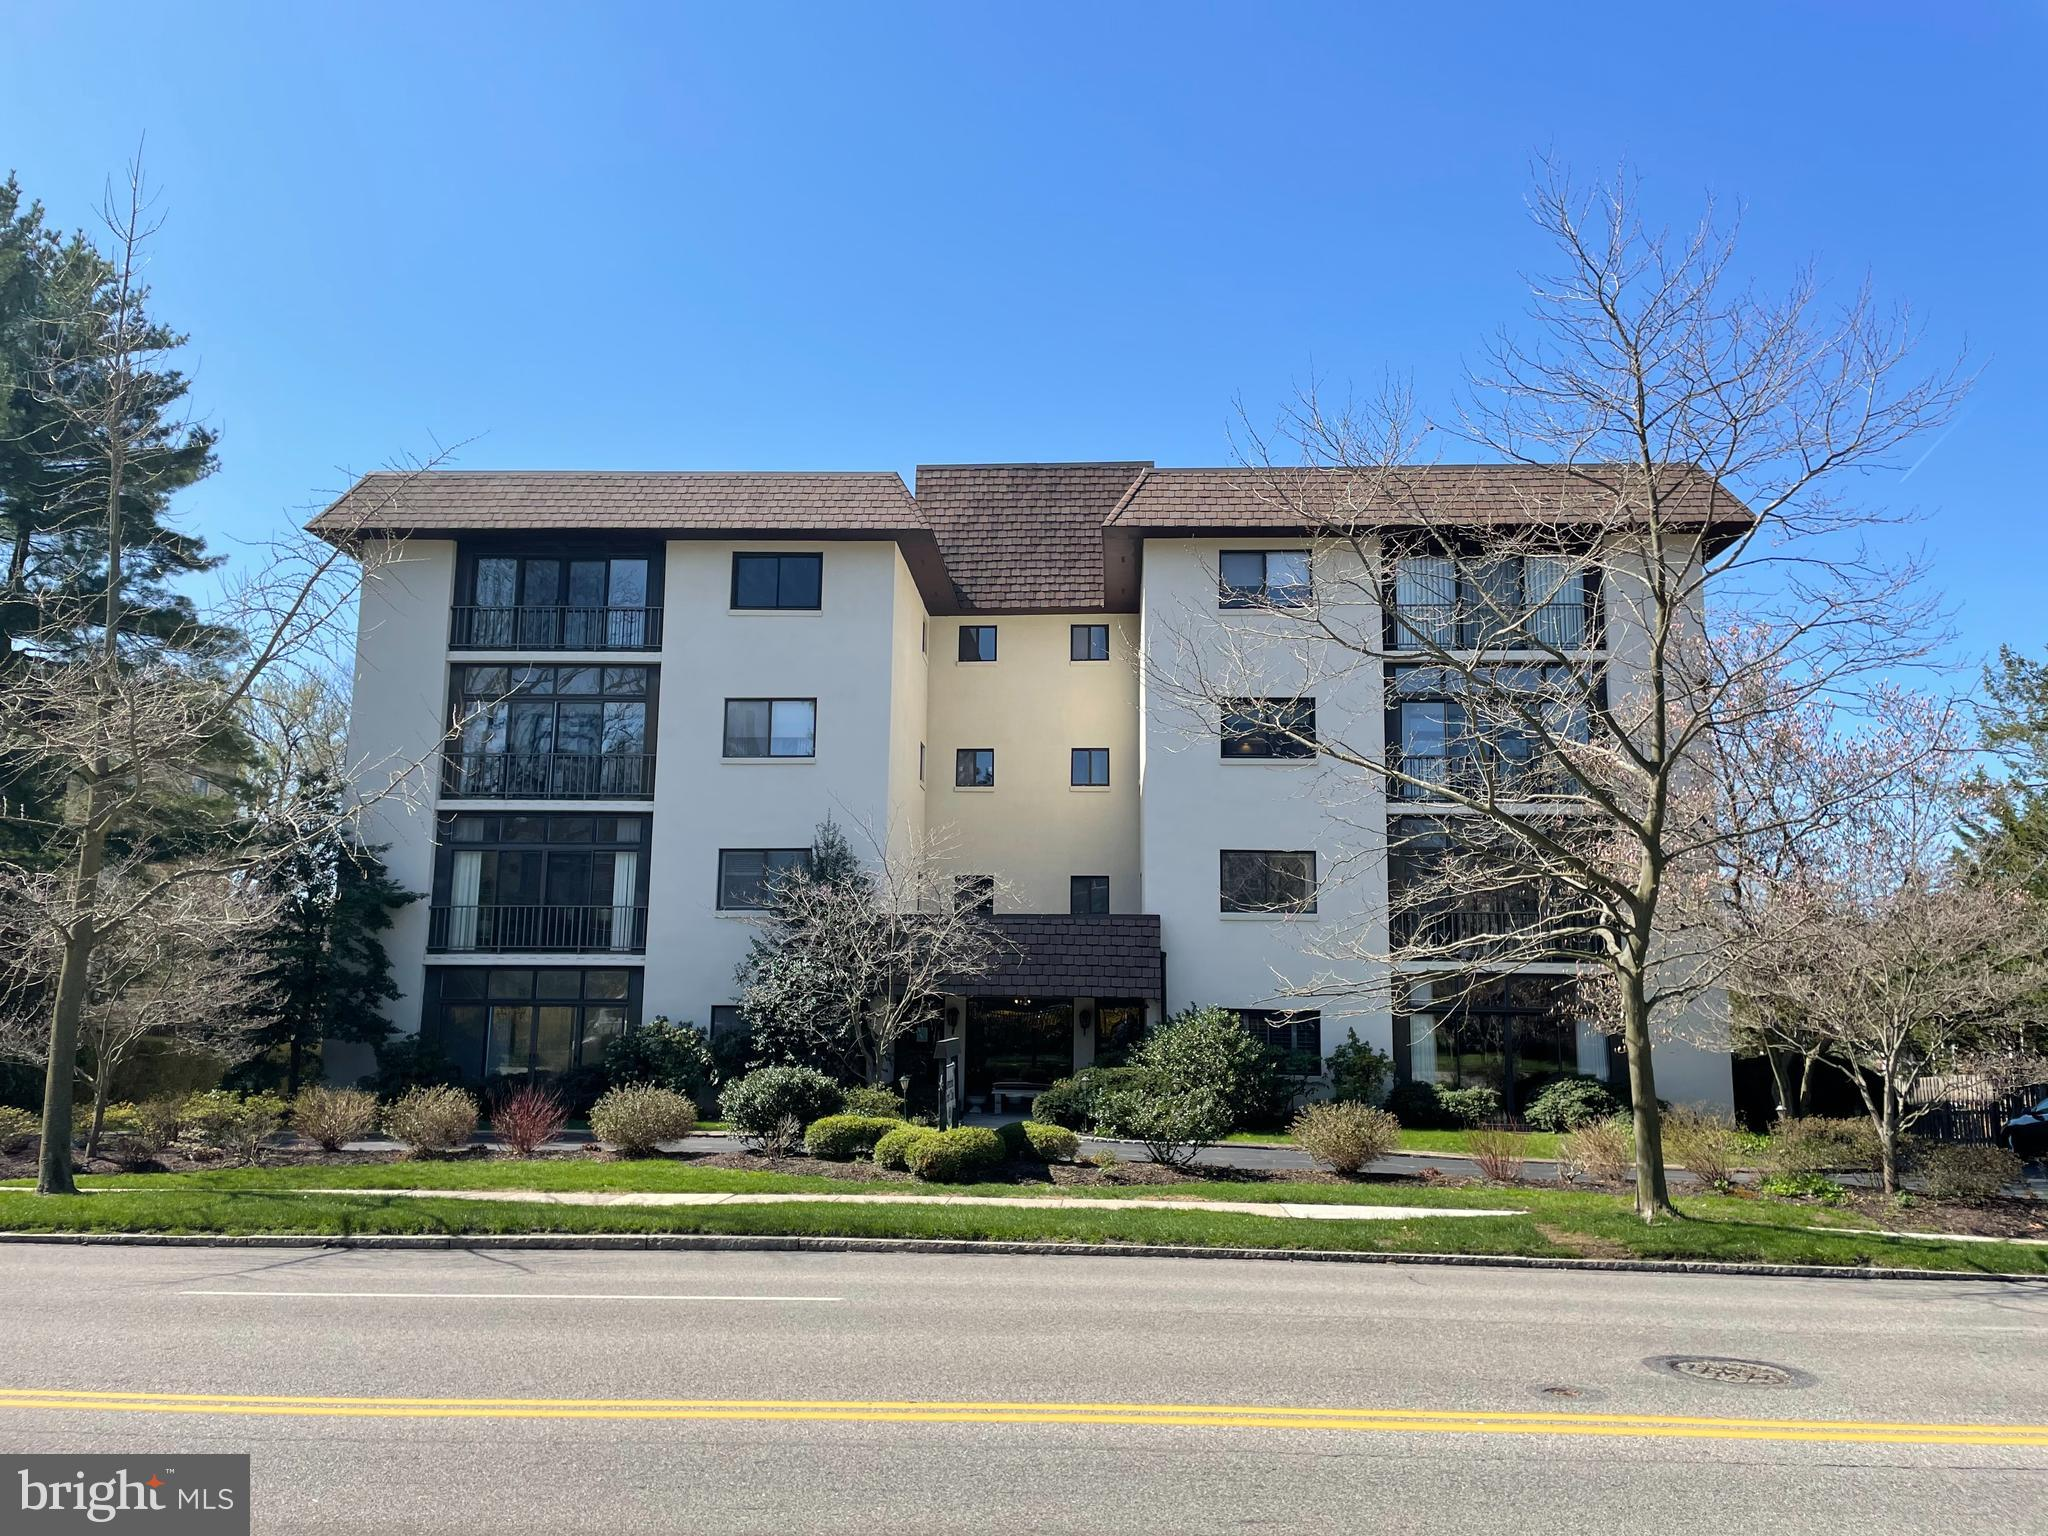 """** All offers to be submitted by Thursday April 8th by 7:00 pm .  Please use 4/8 as your acceptance date.**   Welcome to this unique opportunity to own a meticulously updated condominium at the Haverford Hunt Club. This spacious home, at 432 W Montgomery Avenue, is located within walking distance of the Haverford train station, Sharpe Park and the Merion Cricket Club.   After an elevator ride to the fourth floor, you enter this lovely top floor condo through a foyer leading to a large living area. Stunning oak flooring covers this space. Sliding doors lead to the enclosed, tile floored sunroom- perfect spot for morning coffee or evening cocktail.    Next you will find a well sized dinning room followed by a stylish updated kitchen. The kitchen design boasts custom cabinetry , Caesarstone quartz countertops, Kohler farmhouse sink, tile flooring and a herringbone tiled backsplash . A Kitchen Aide cooktop and a range coupled with a Liebherr refrigerator complete the look.    The large master bedroom is cheery and features an oversized walk in closet and renovated en suite bath, also featuring custom cabinetry and a quartz vanity top. ( All closets in the condo are professionally  finished by Closets By Design; window treatments are custom Hunter Douglas 2"""" wooden blinds.)    The second bedroom must recently served as a library/tv room complete with a wall of built in shelving. It is a perfect place to relax . The third bedroom was recently  used as an office and includes a full sized LG washer.dryer, tastefully hidden behind a red barn door .    There is also a second full sized bathroom located on the hallway near the second and third bedroom.    The unit includes a parking space in the building's parking garage  as well as a storage bin in the lower level. The parking area may be reached by Old Lancaster or Montgomery Avenue.   Haverford Hunt Club's hallways and lobby were recently renovated and serve to welcome you home to this Lower Merion gem."""